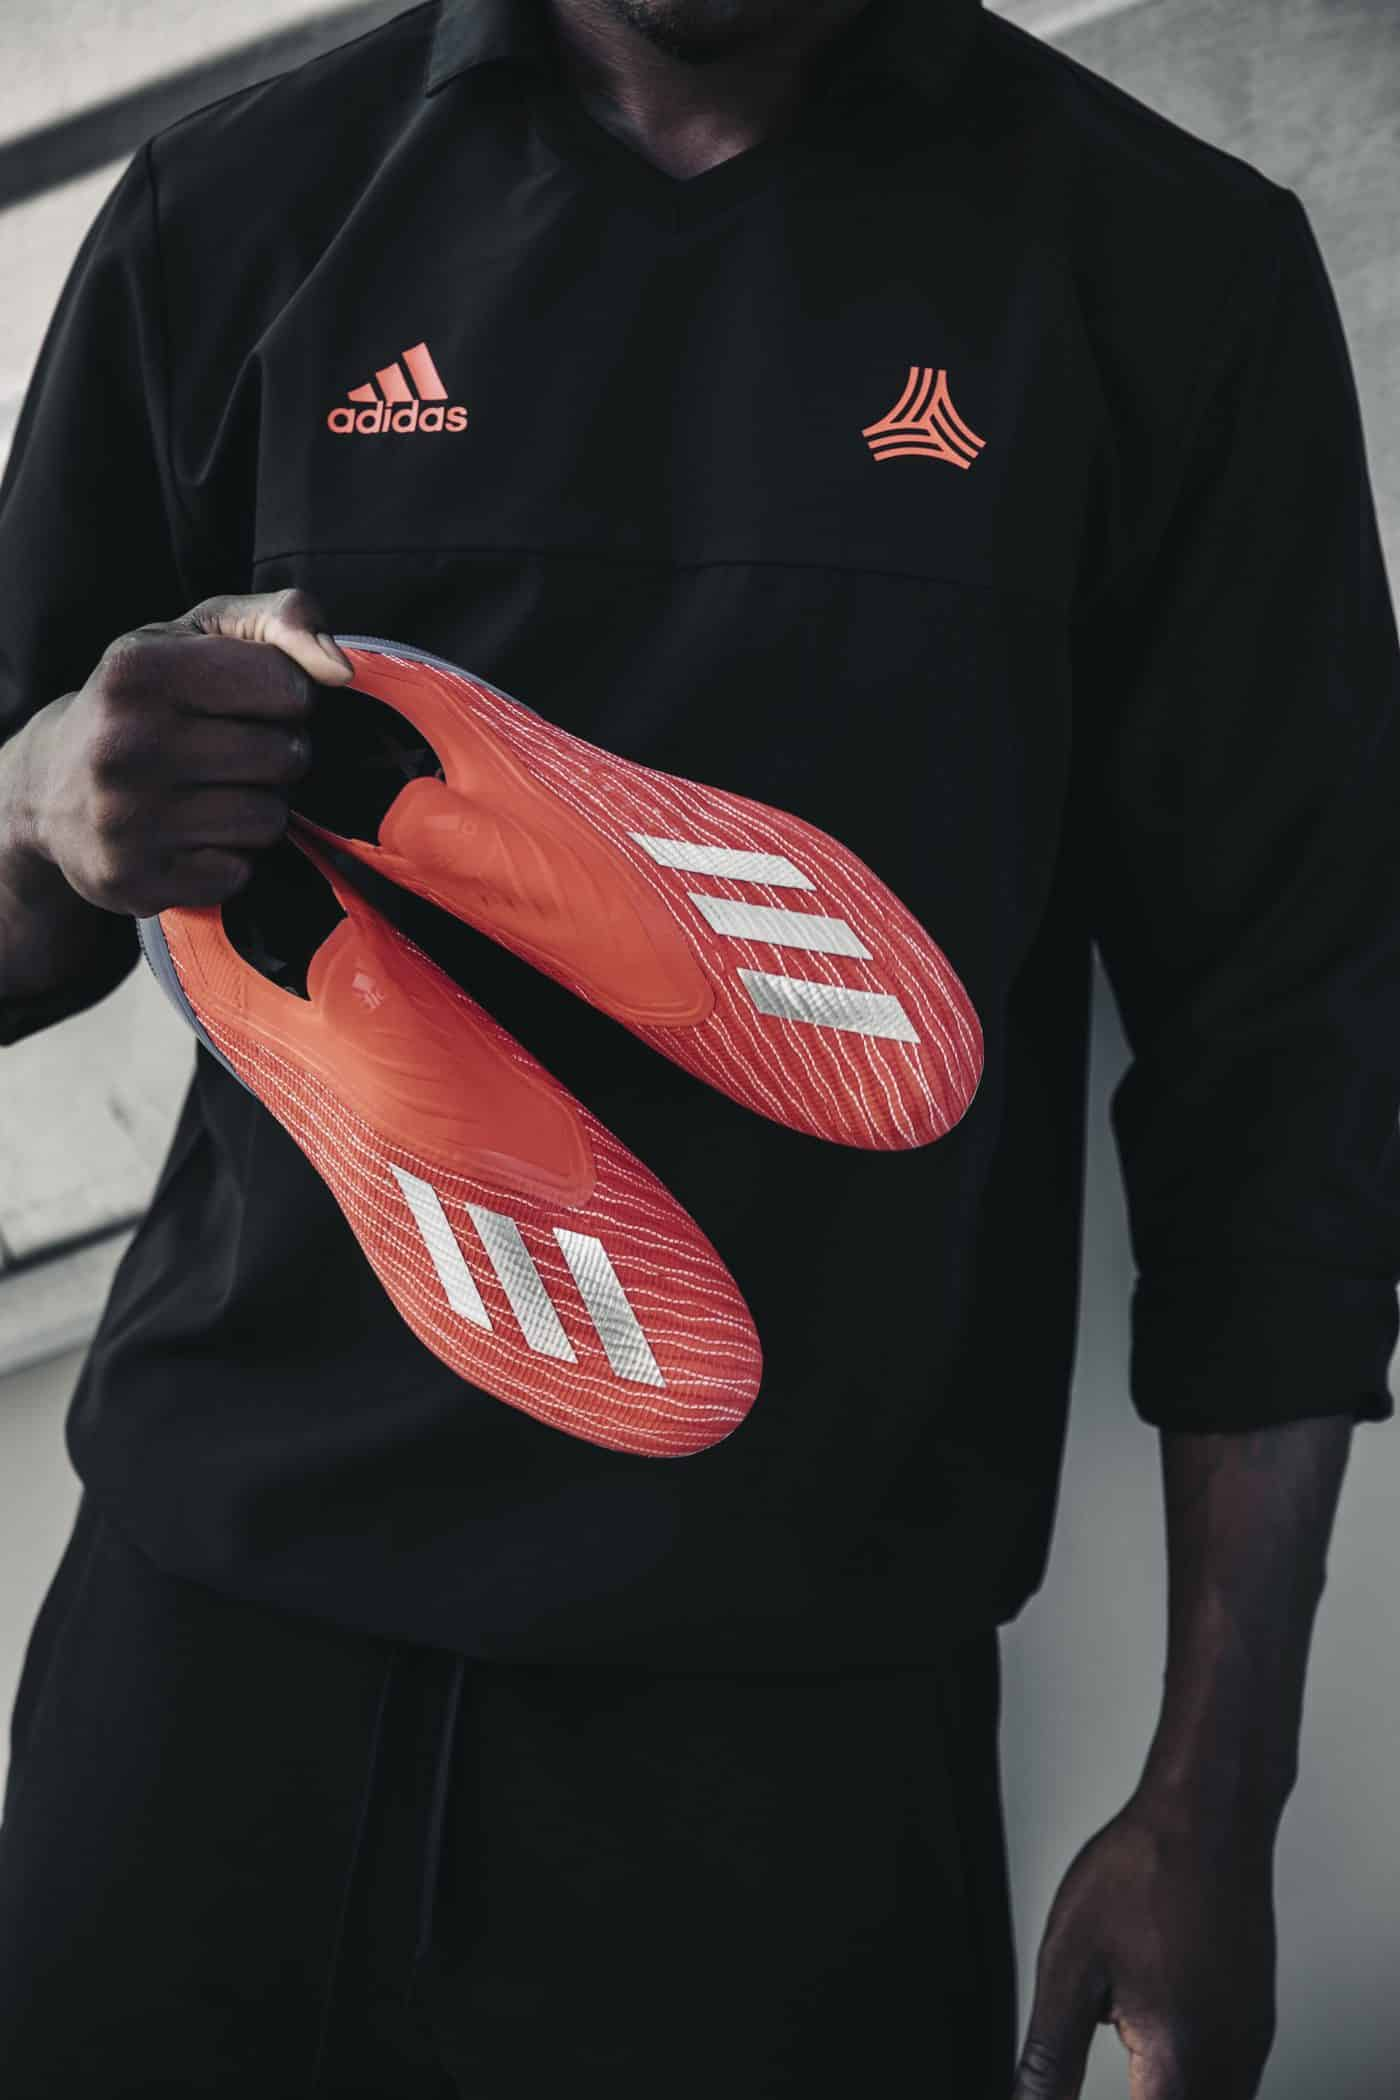 adidas-x-18-exhibit-pack-2